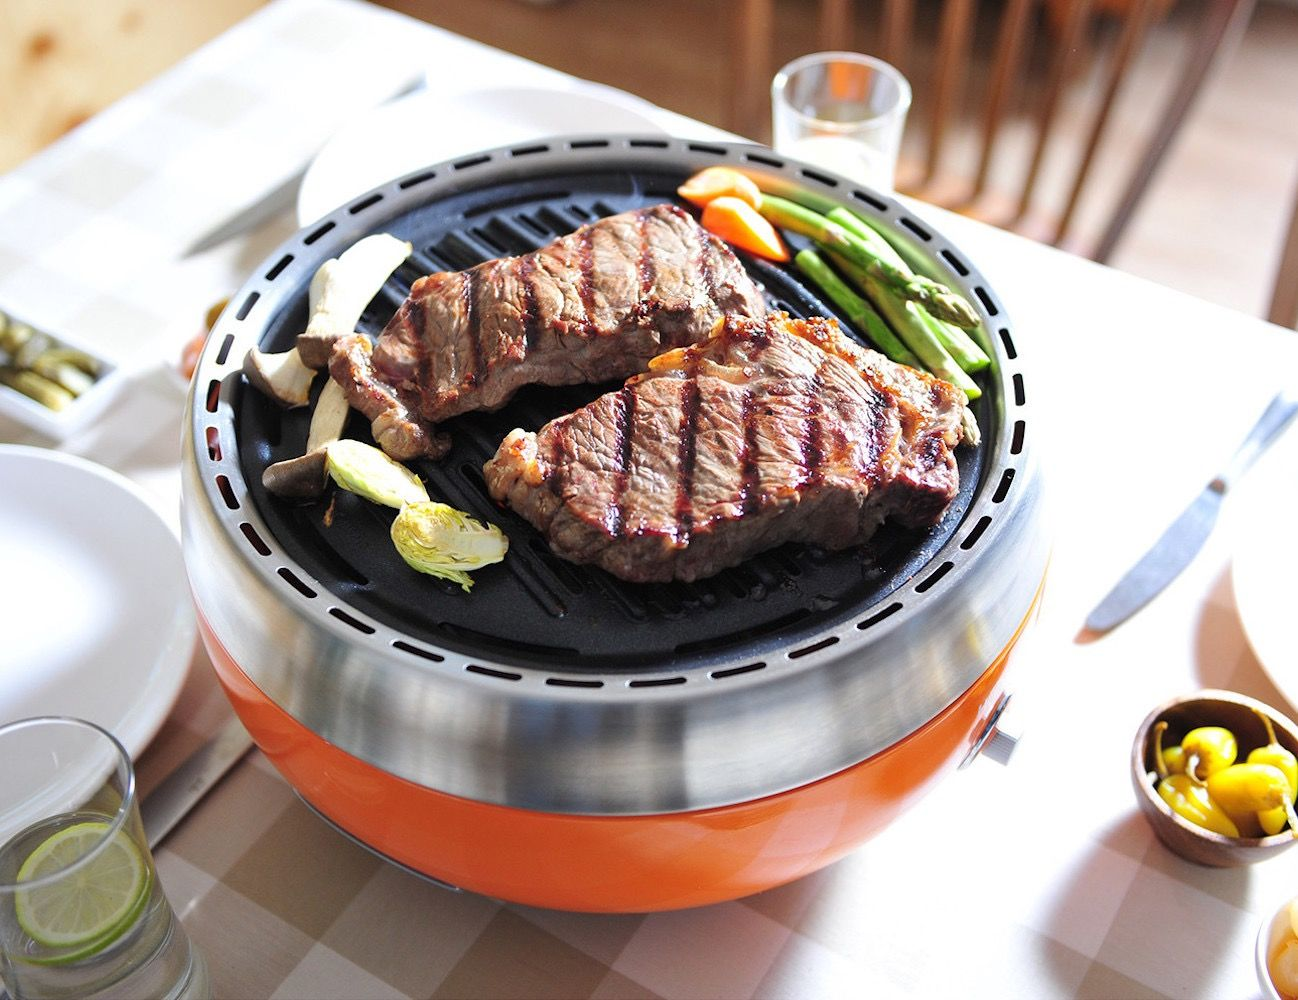 homping grill ultimate portable charcoal bbq grill bbq grill